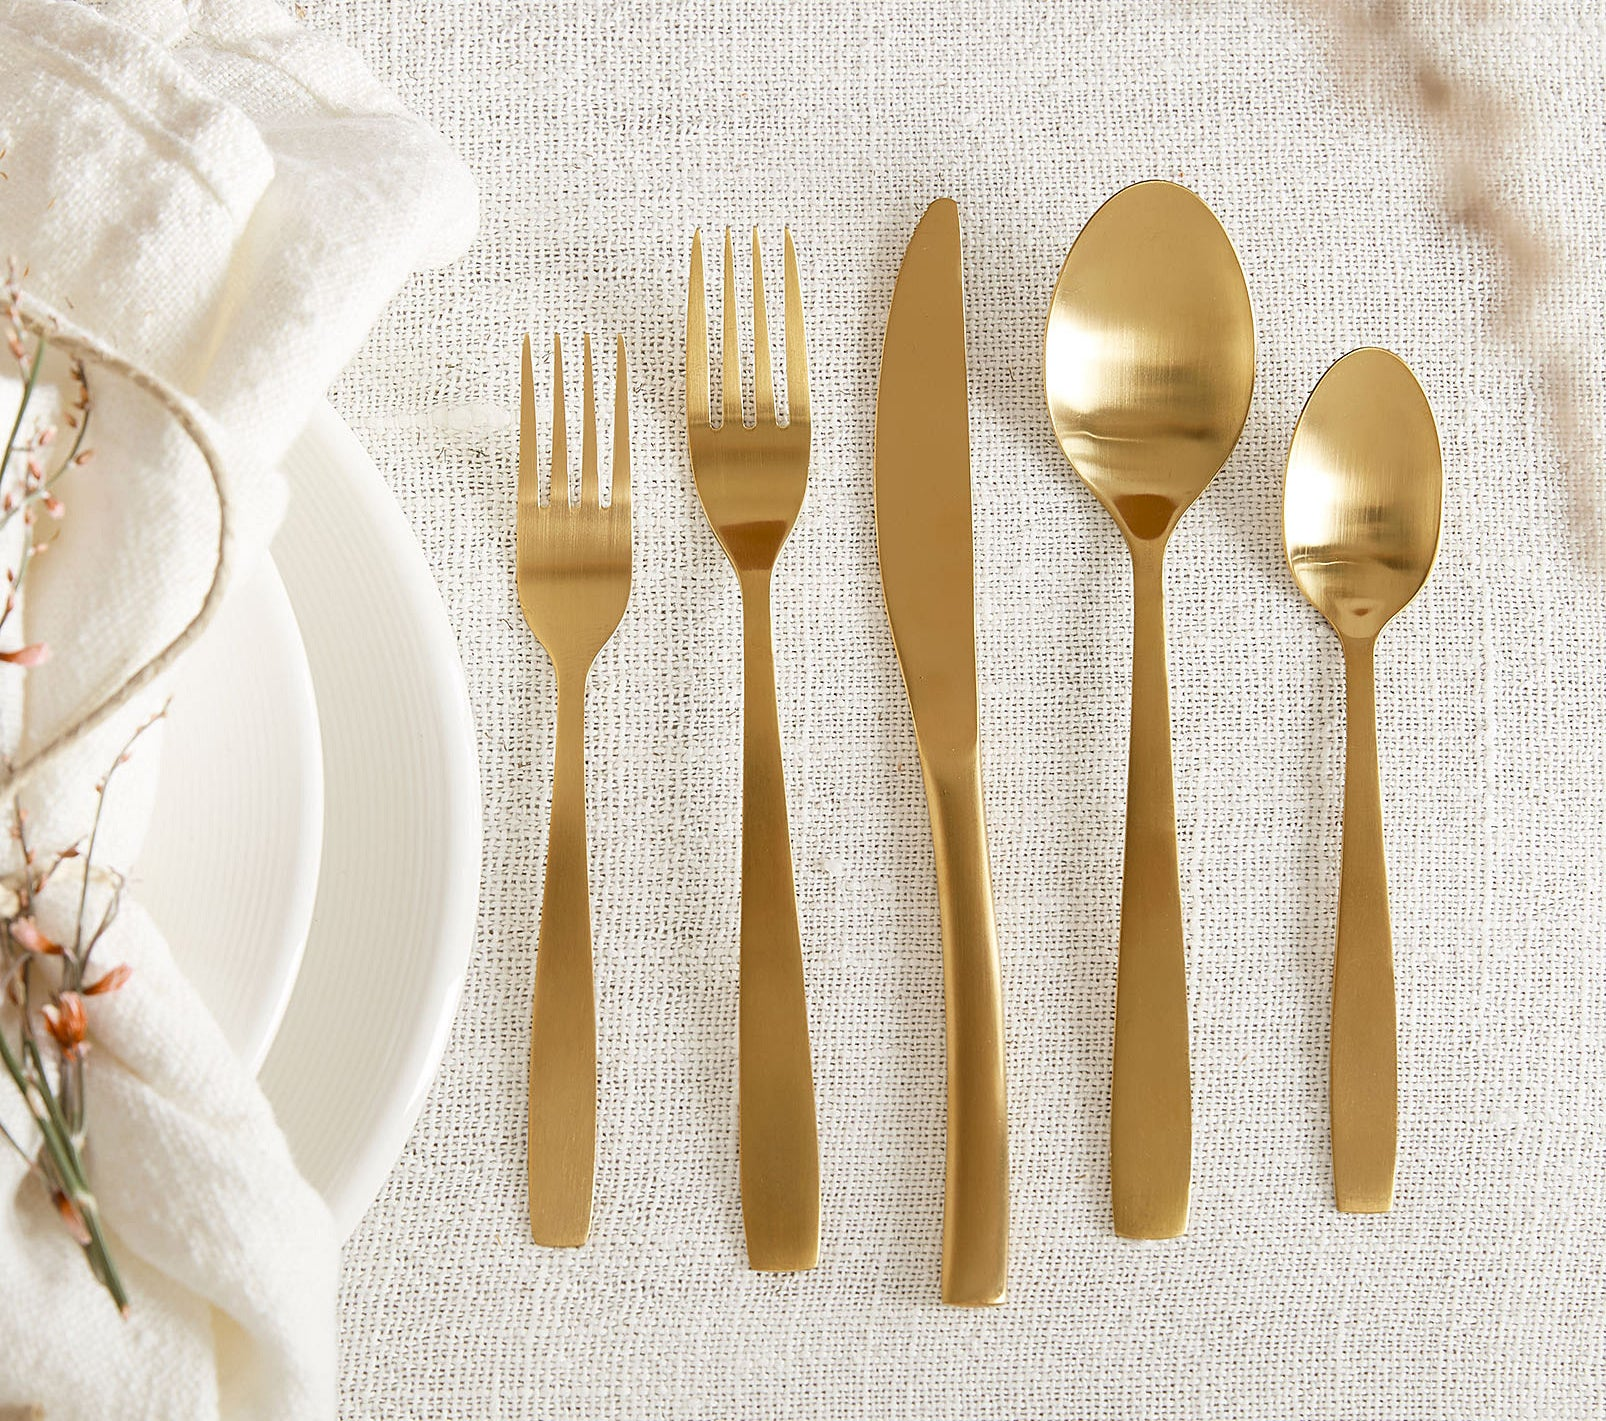 A set of gold cutlery on a table